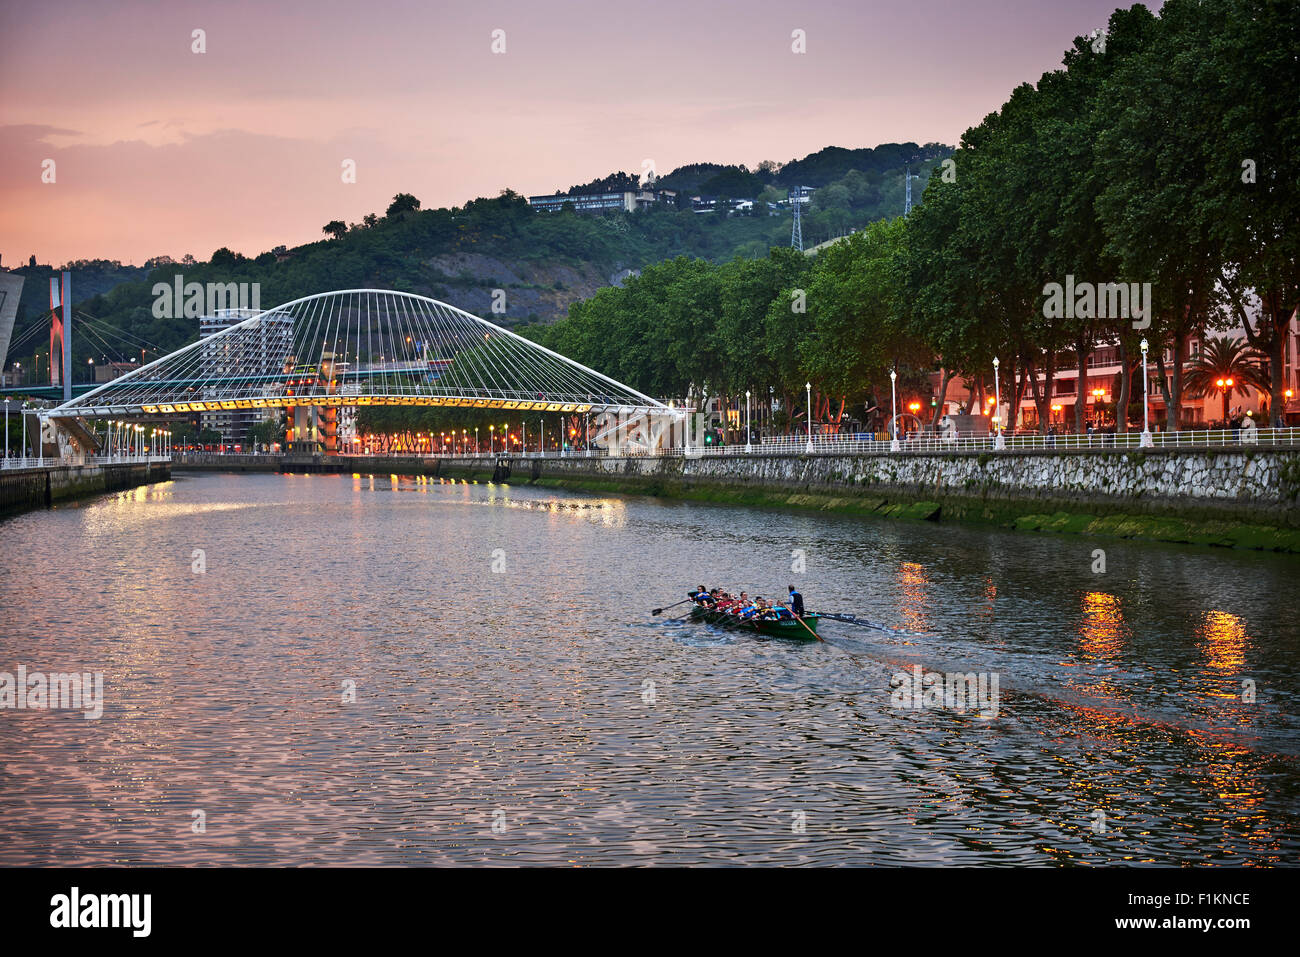 Drifter in the Nervion River, Bilbao, Biscay, Basque Country, Euskadi, Spain, Europe - Stock Image